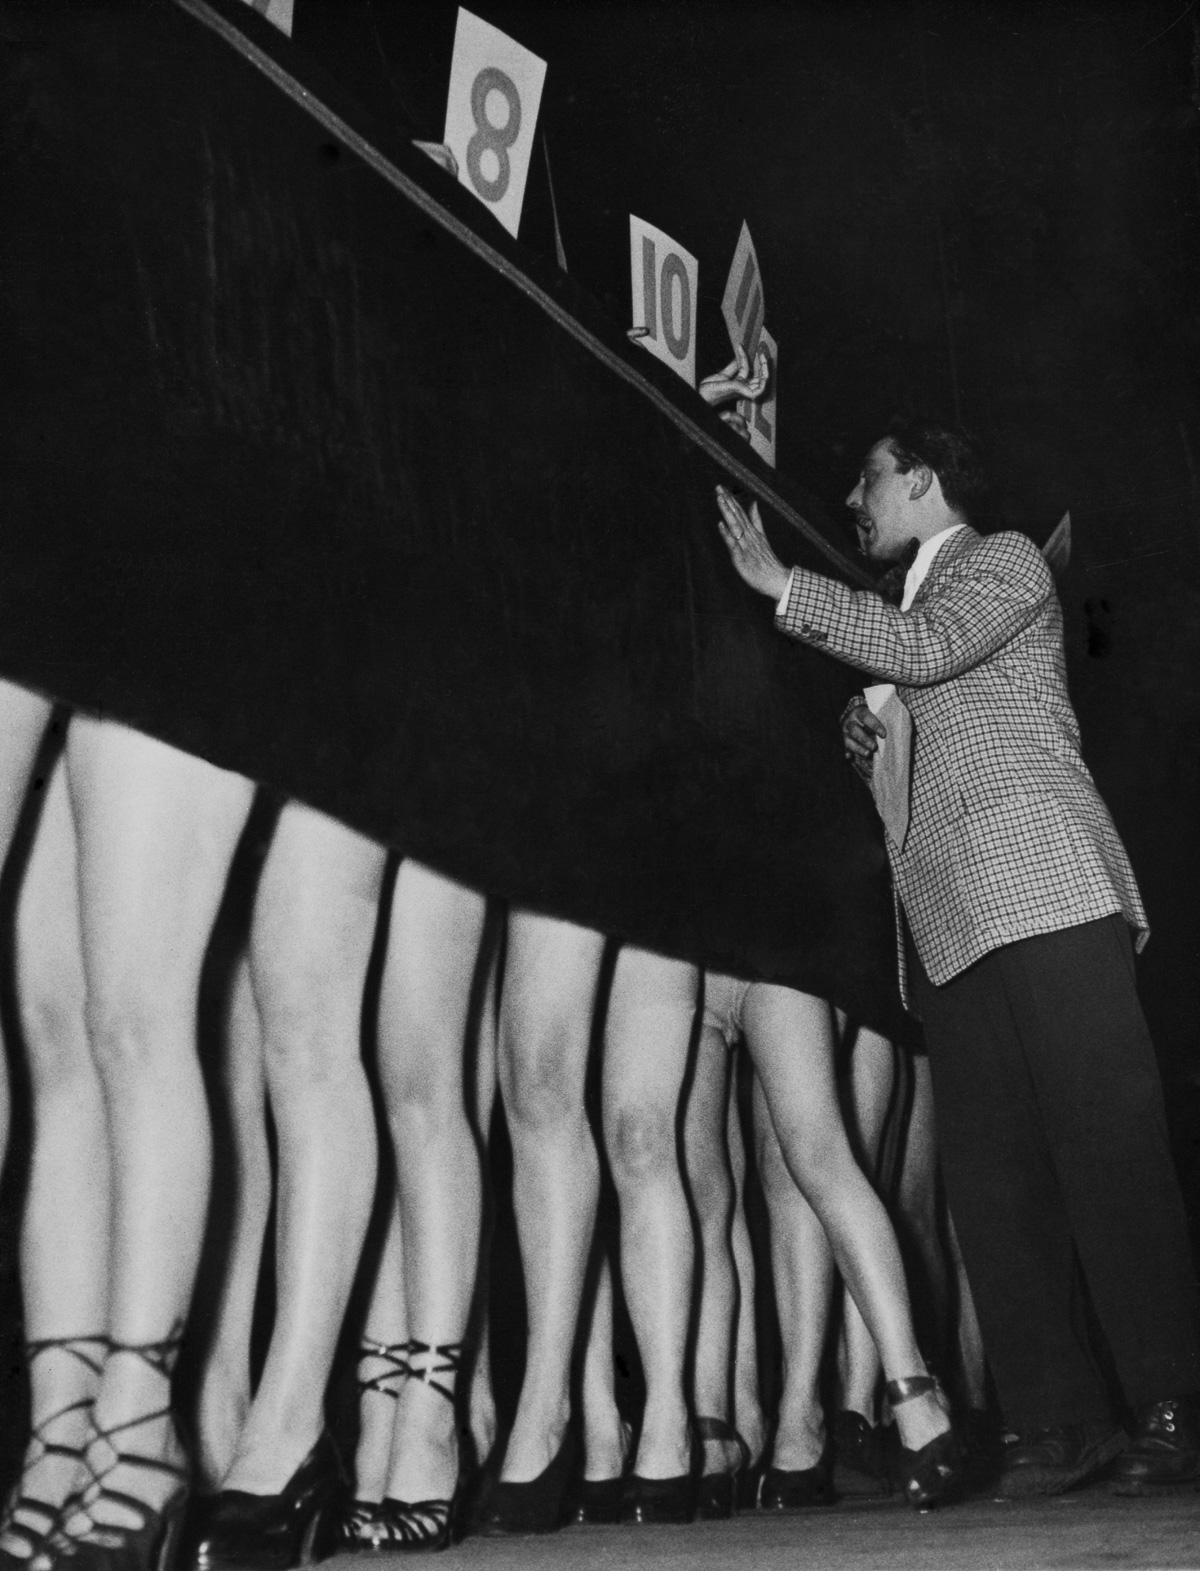 Max Japy Presenting Most Beautiful Legs Of Paris Contest In Paris On January 1950